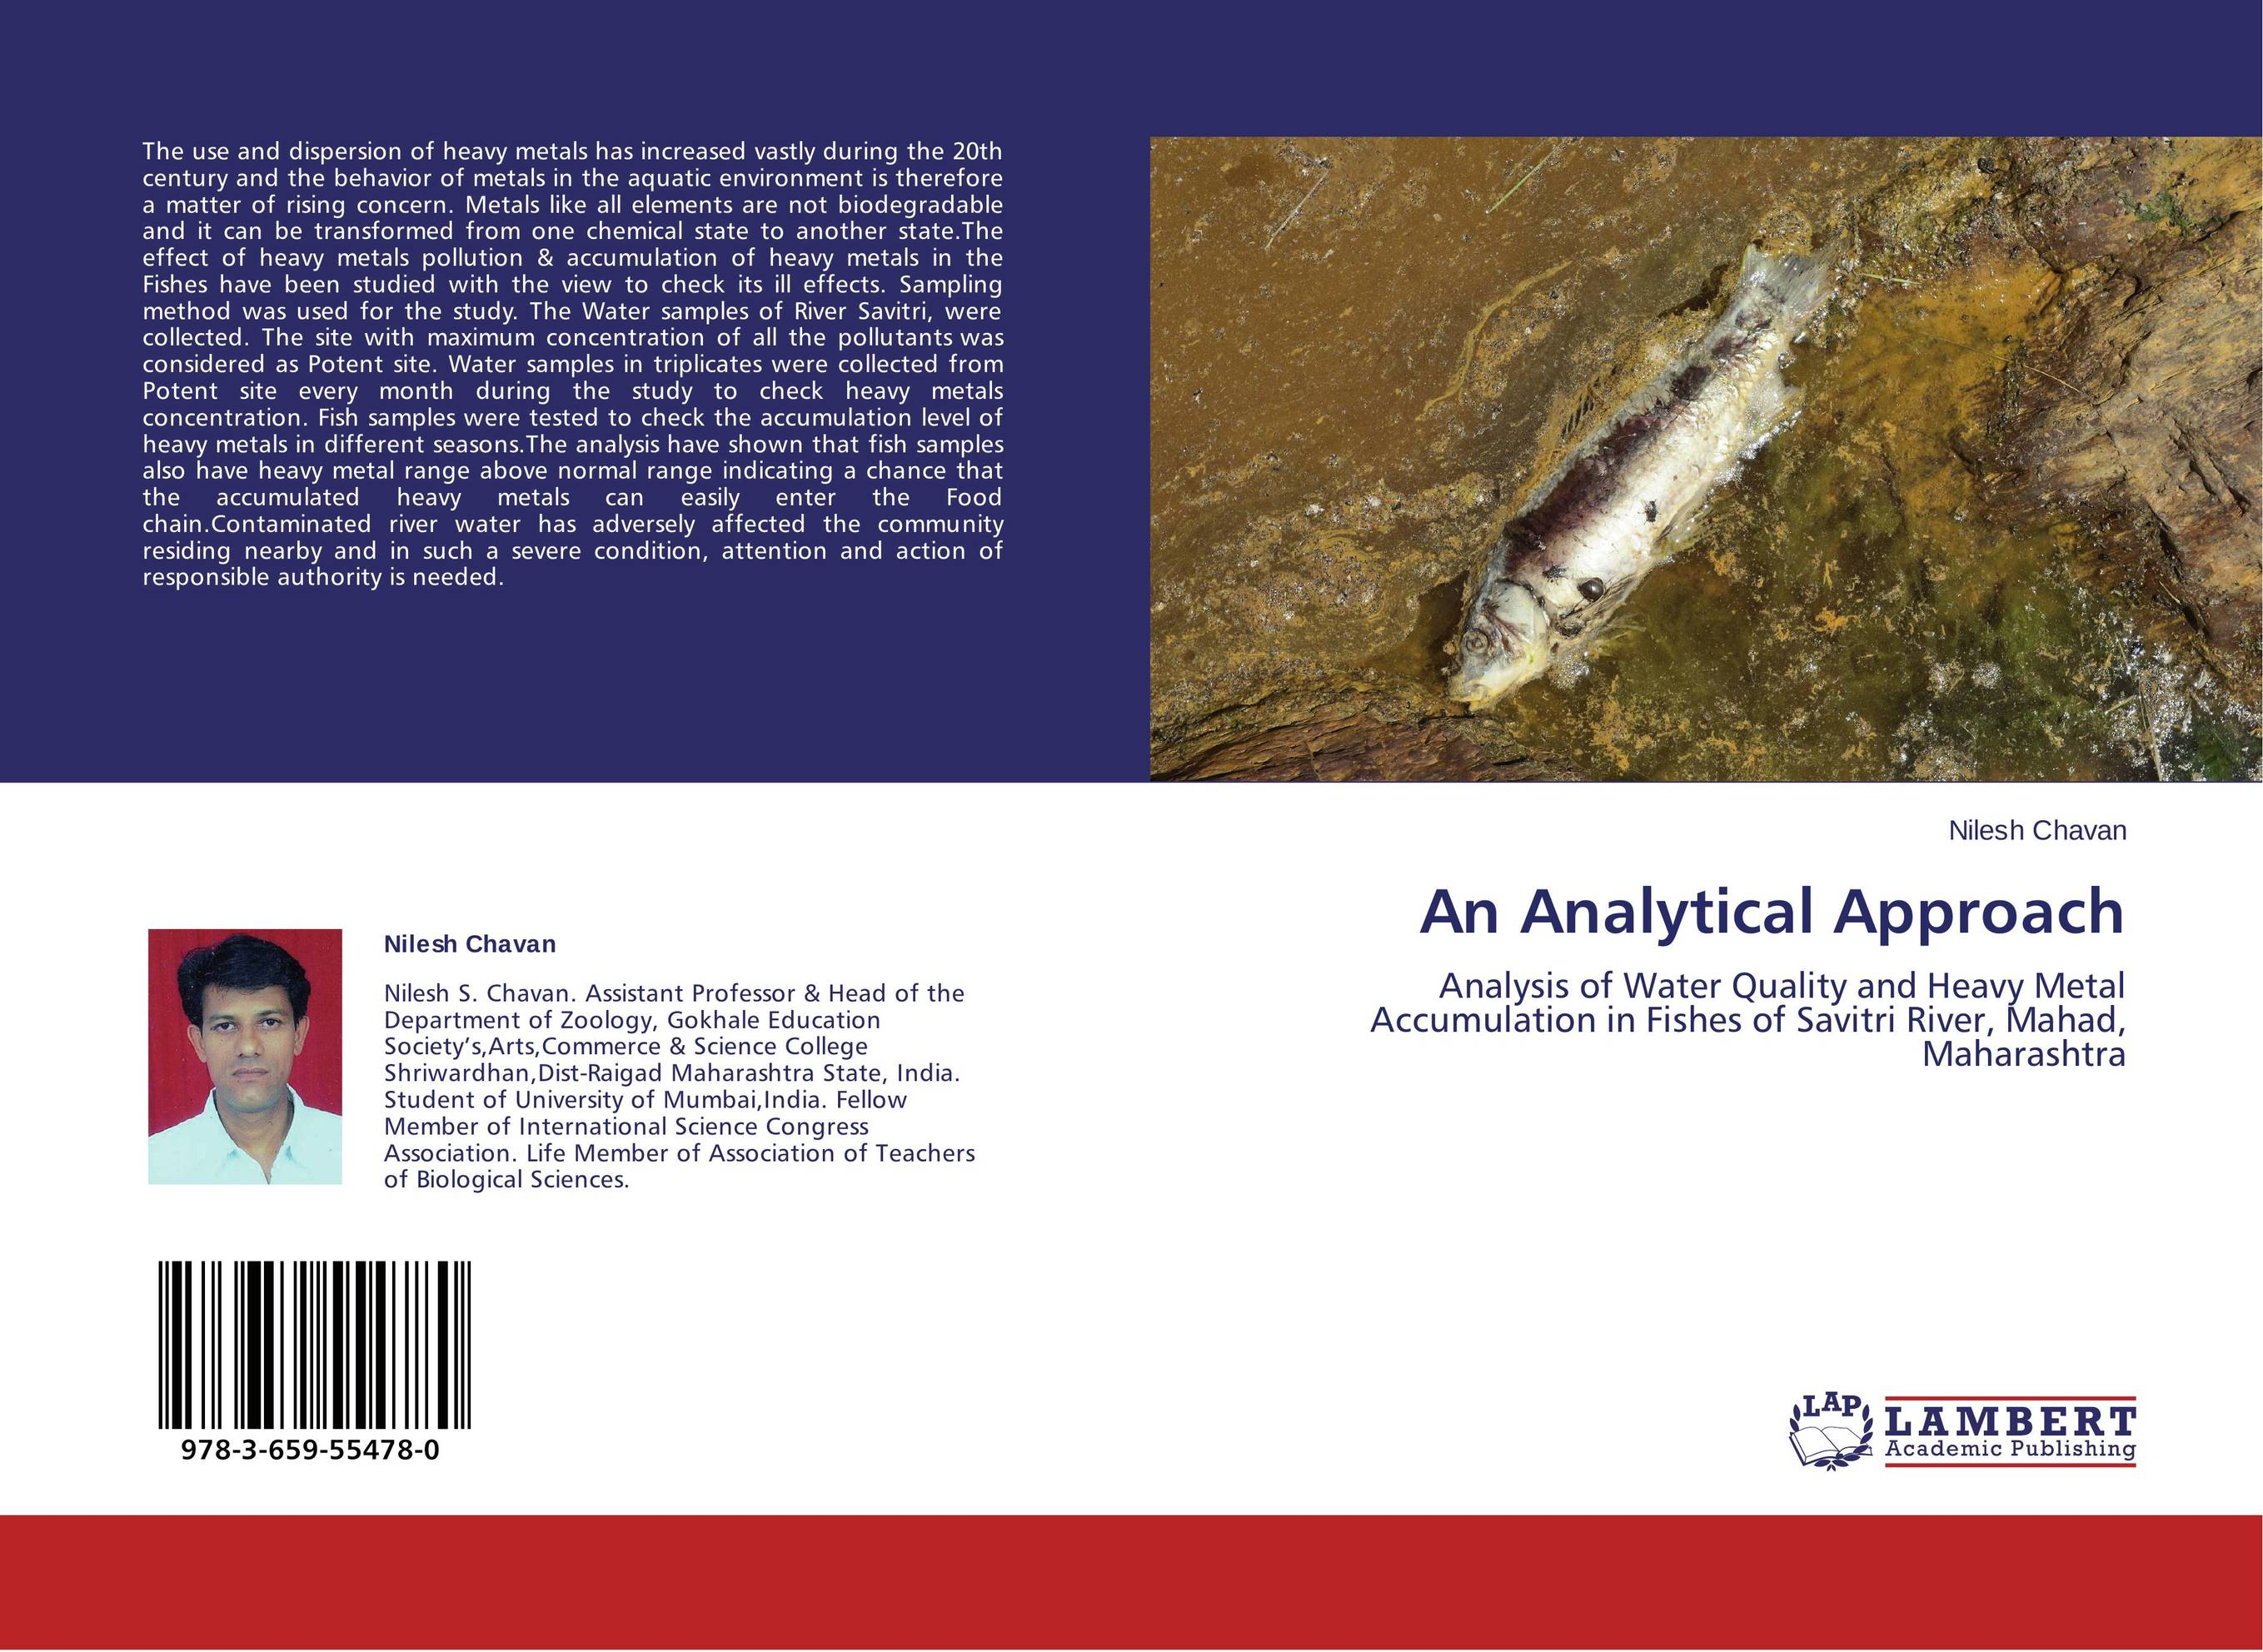 an analysis of the water is The multielement analysis of water is one of the major applications for inductively coupled plasma-optical emission spectroscopy (icp-oes) this report describes the analysis of metals and trace elements in drinking water in terms of sensitivity, precision, and accuracy.